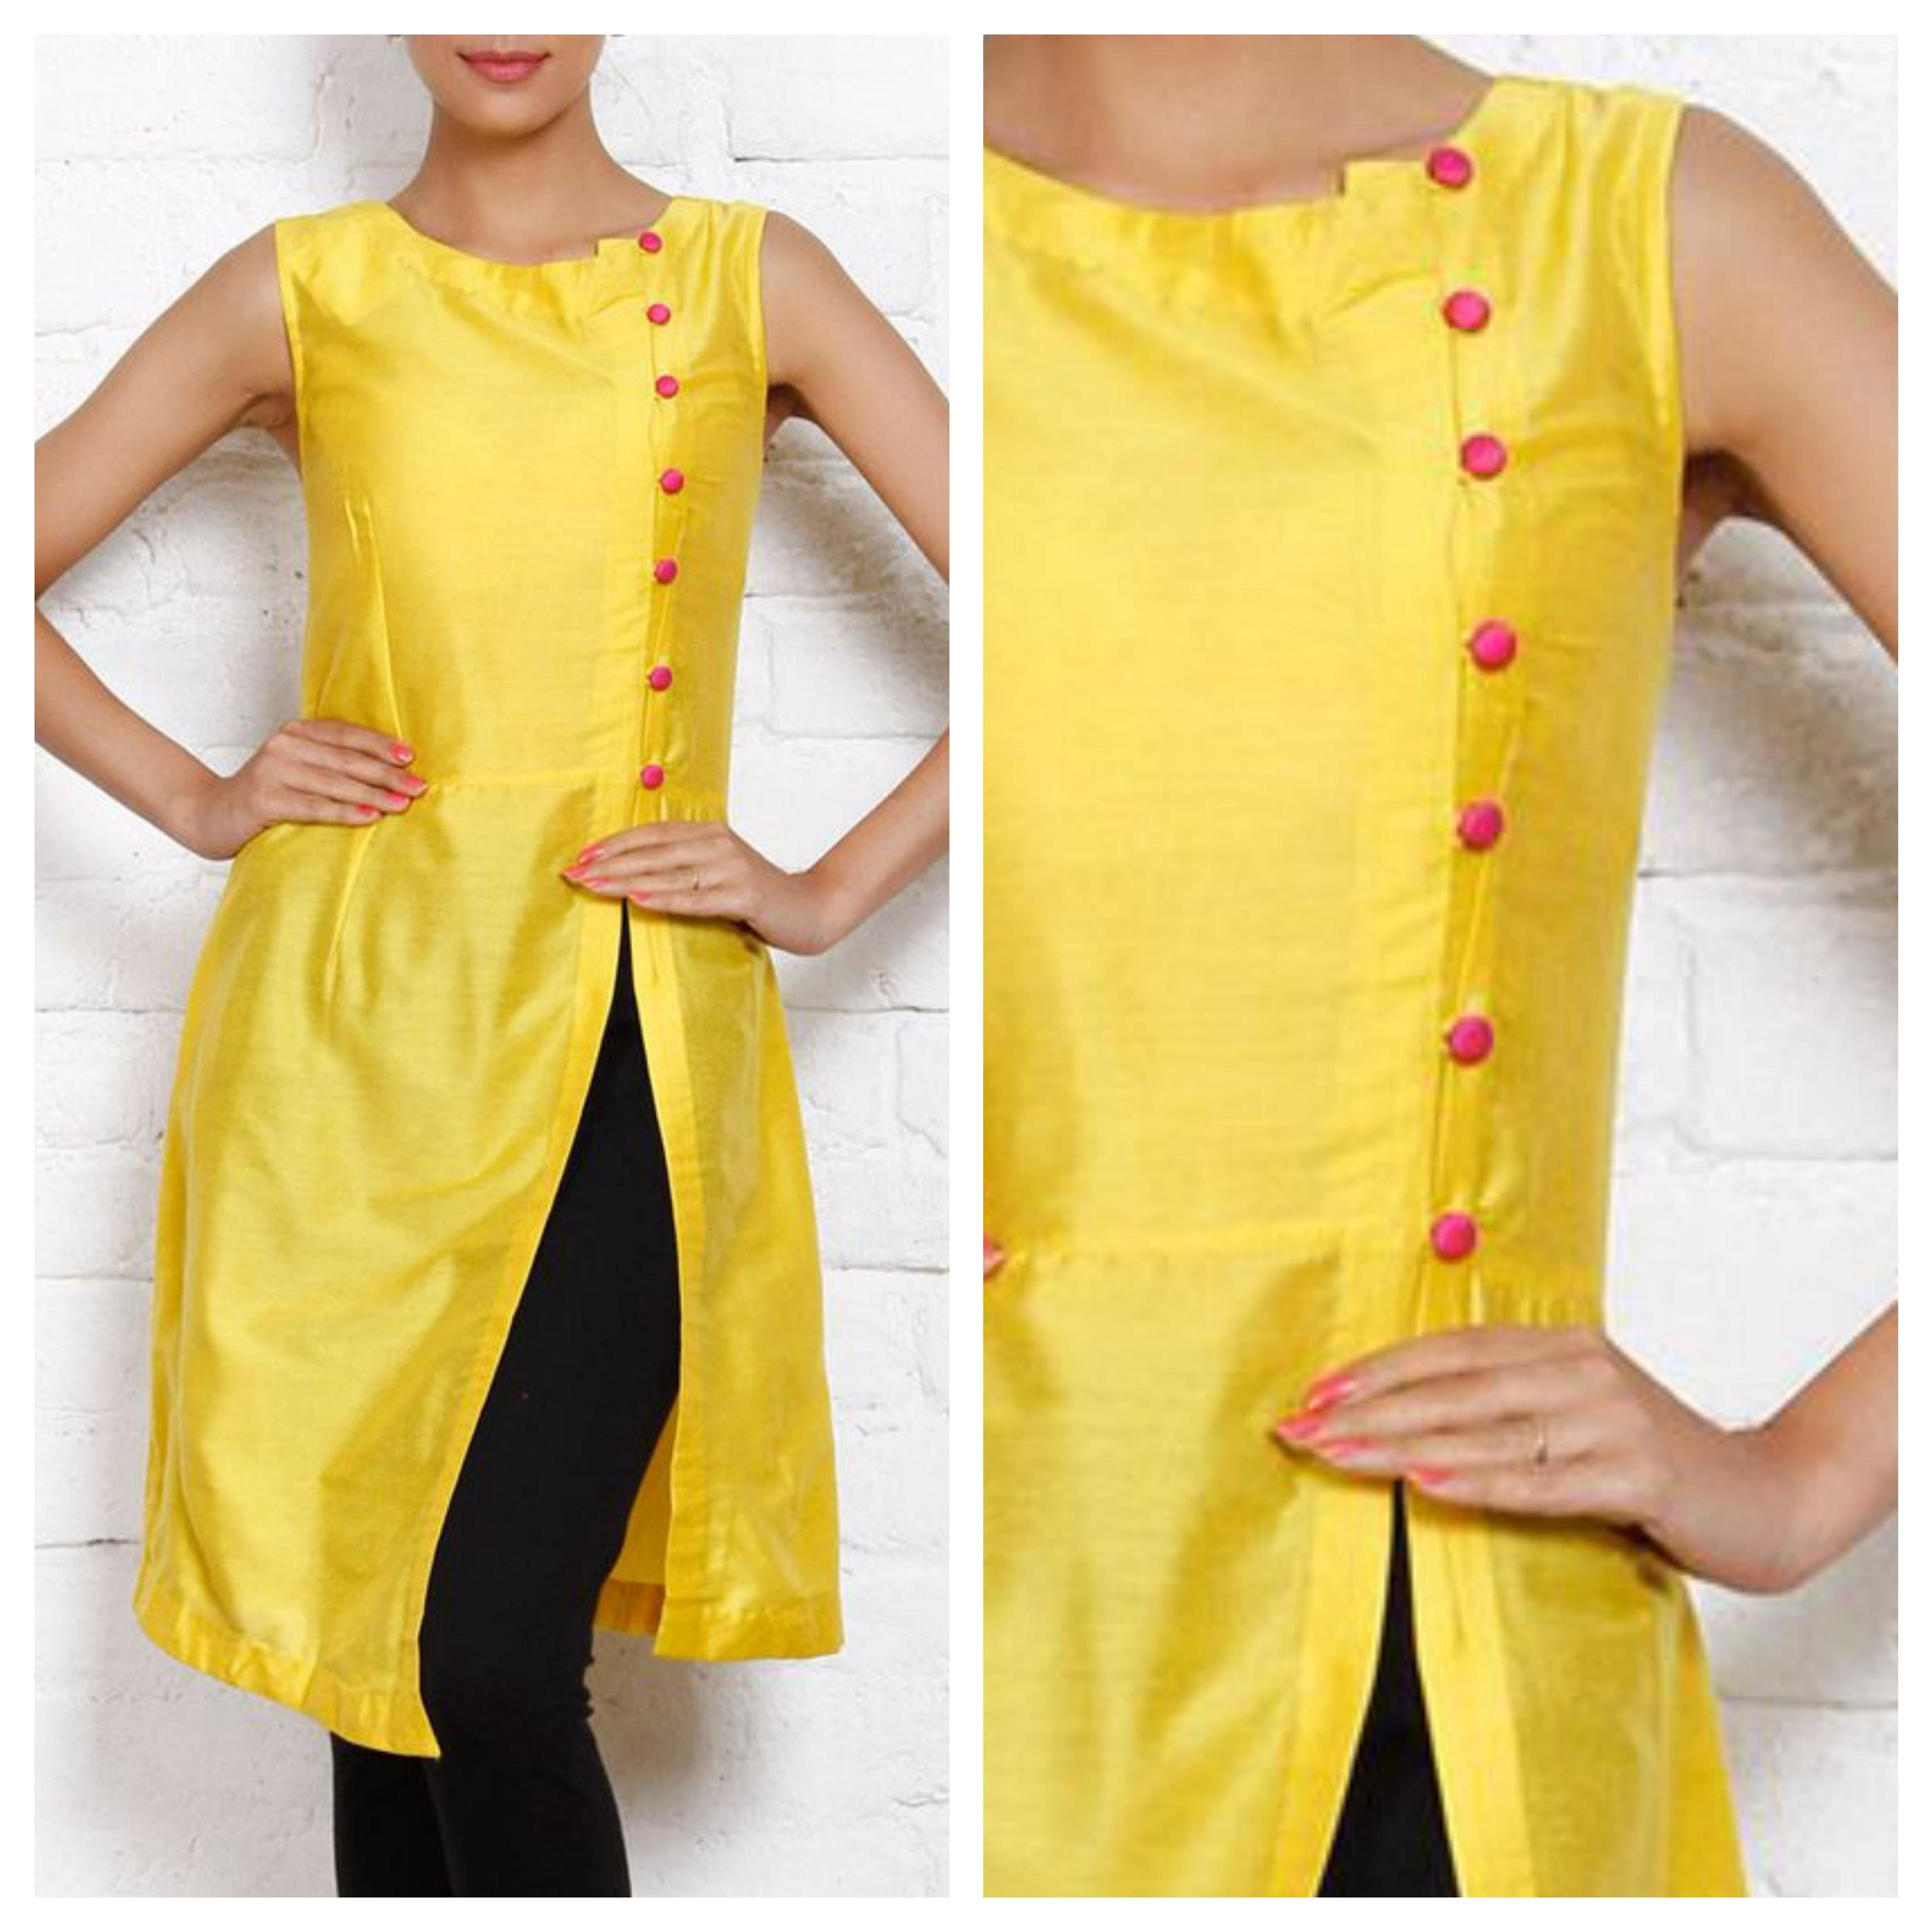 Pin on Sewing videos